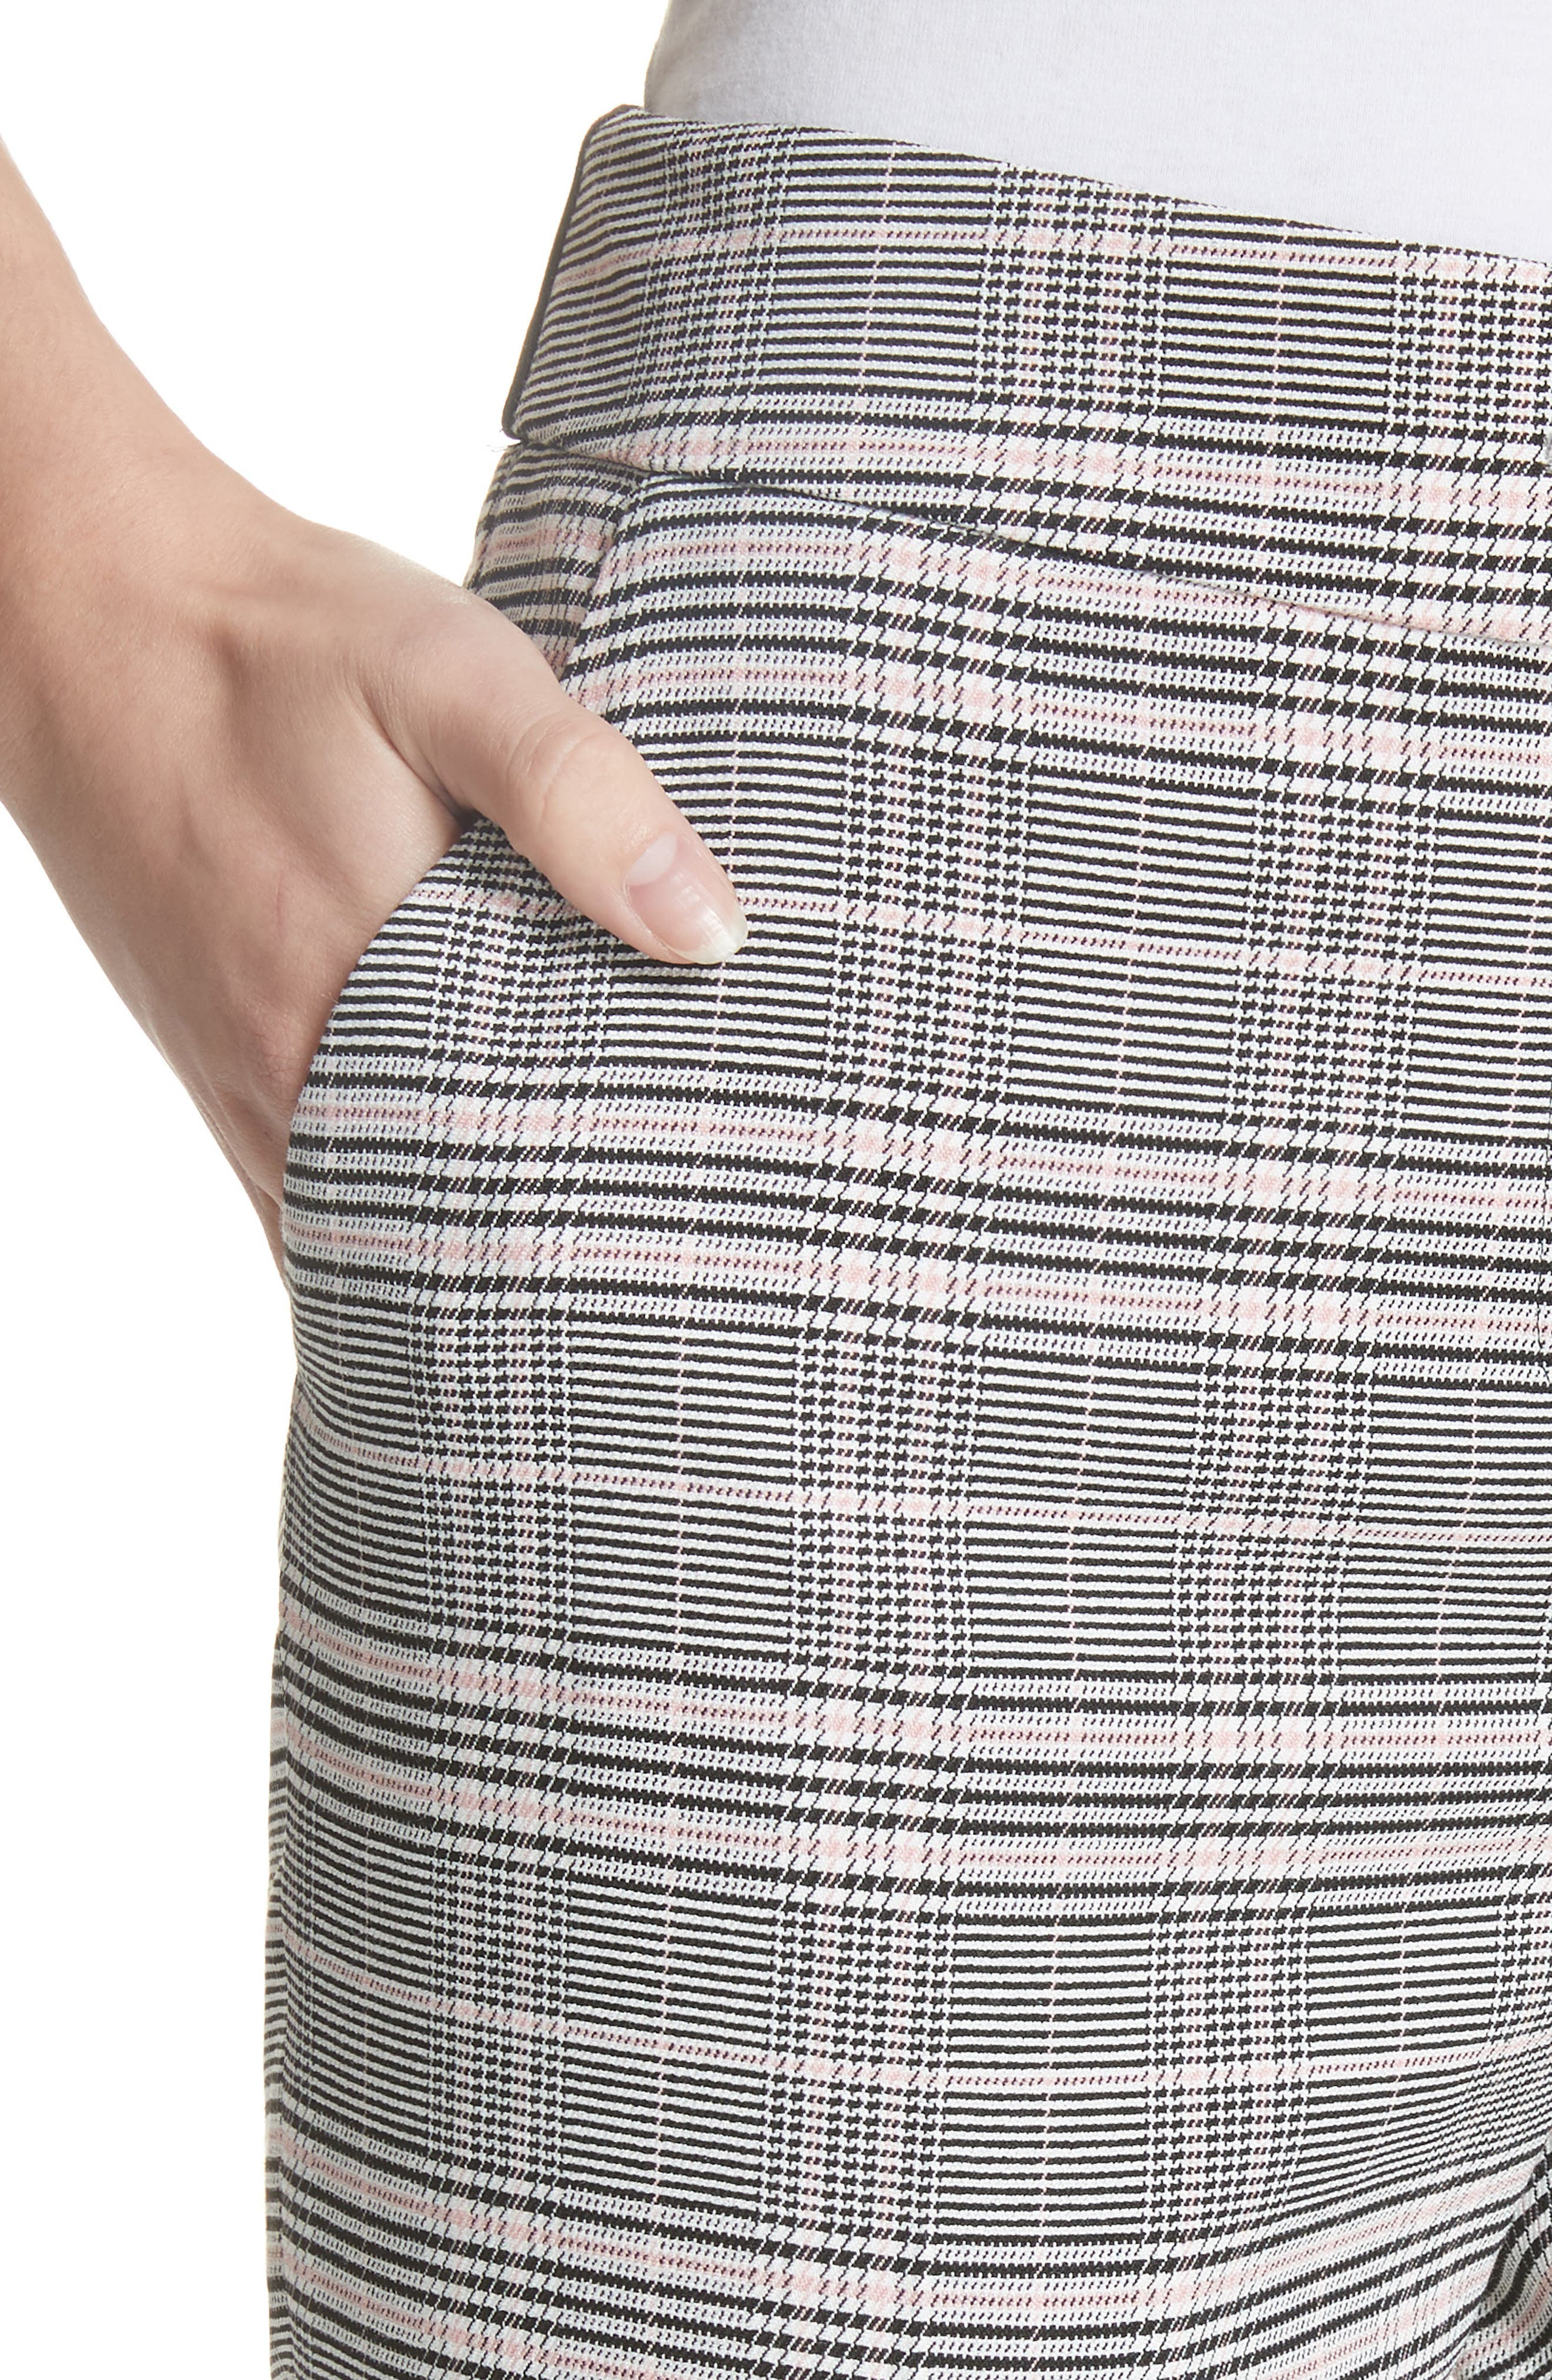 Ted Working Title Kimmt Check Plaid Trousers,                             Alternate thumbnail 4, color,                             GREY